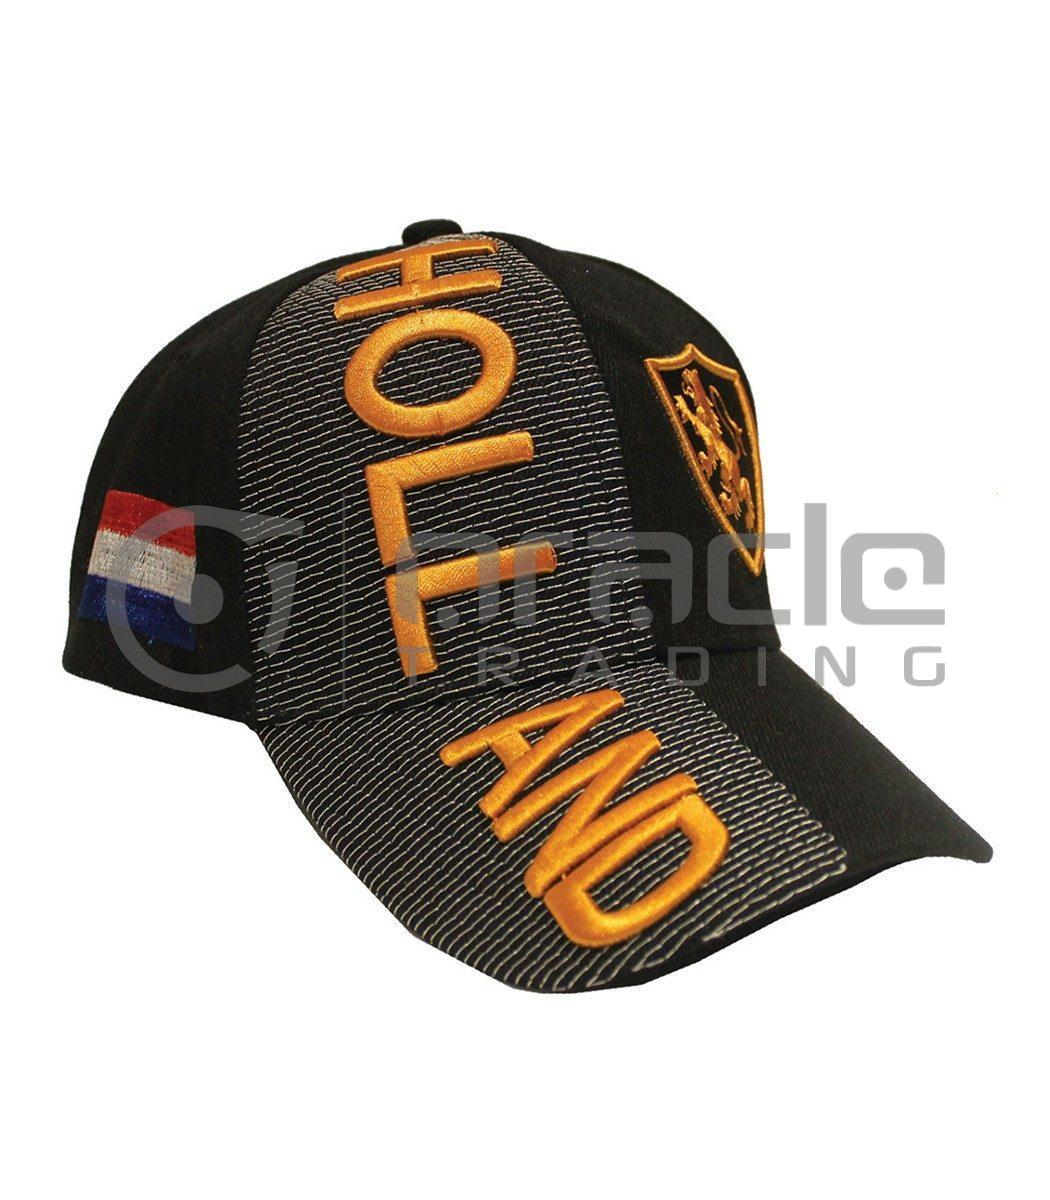 3D Holland Hat - Black